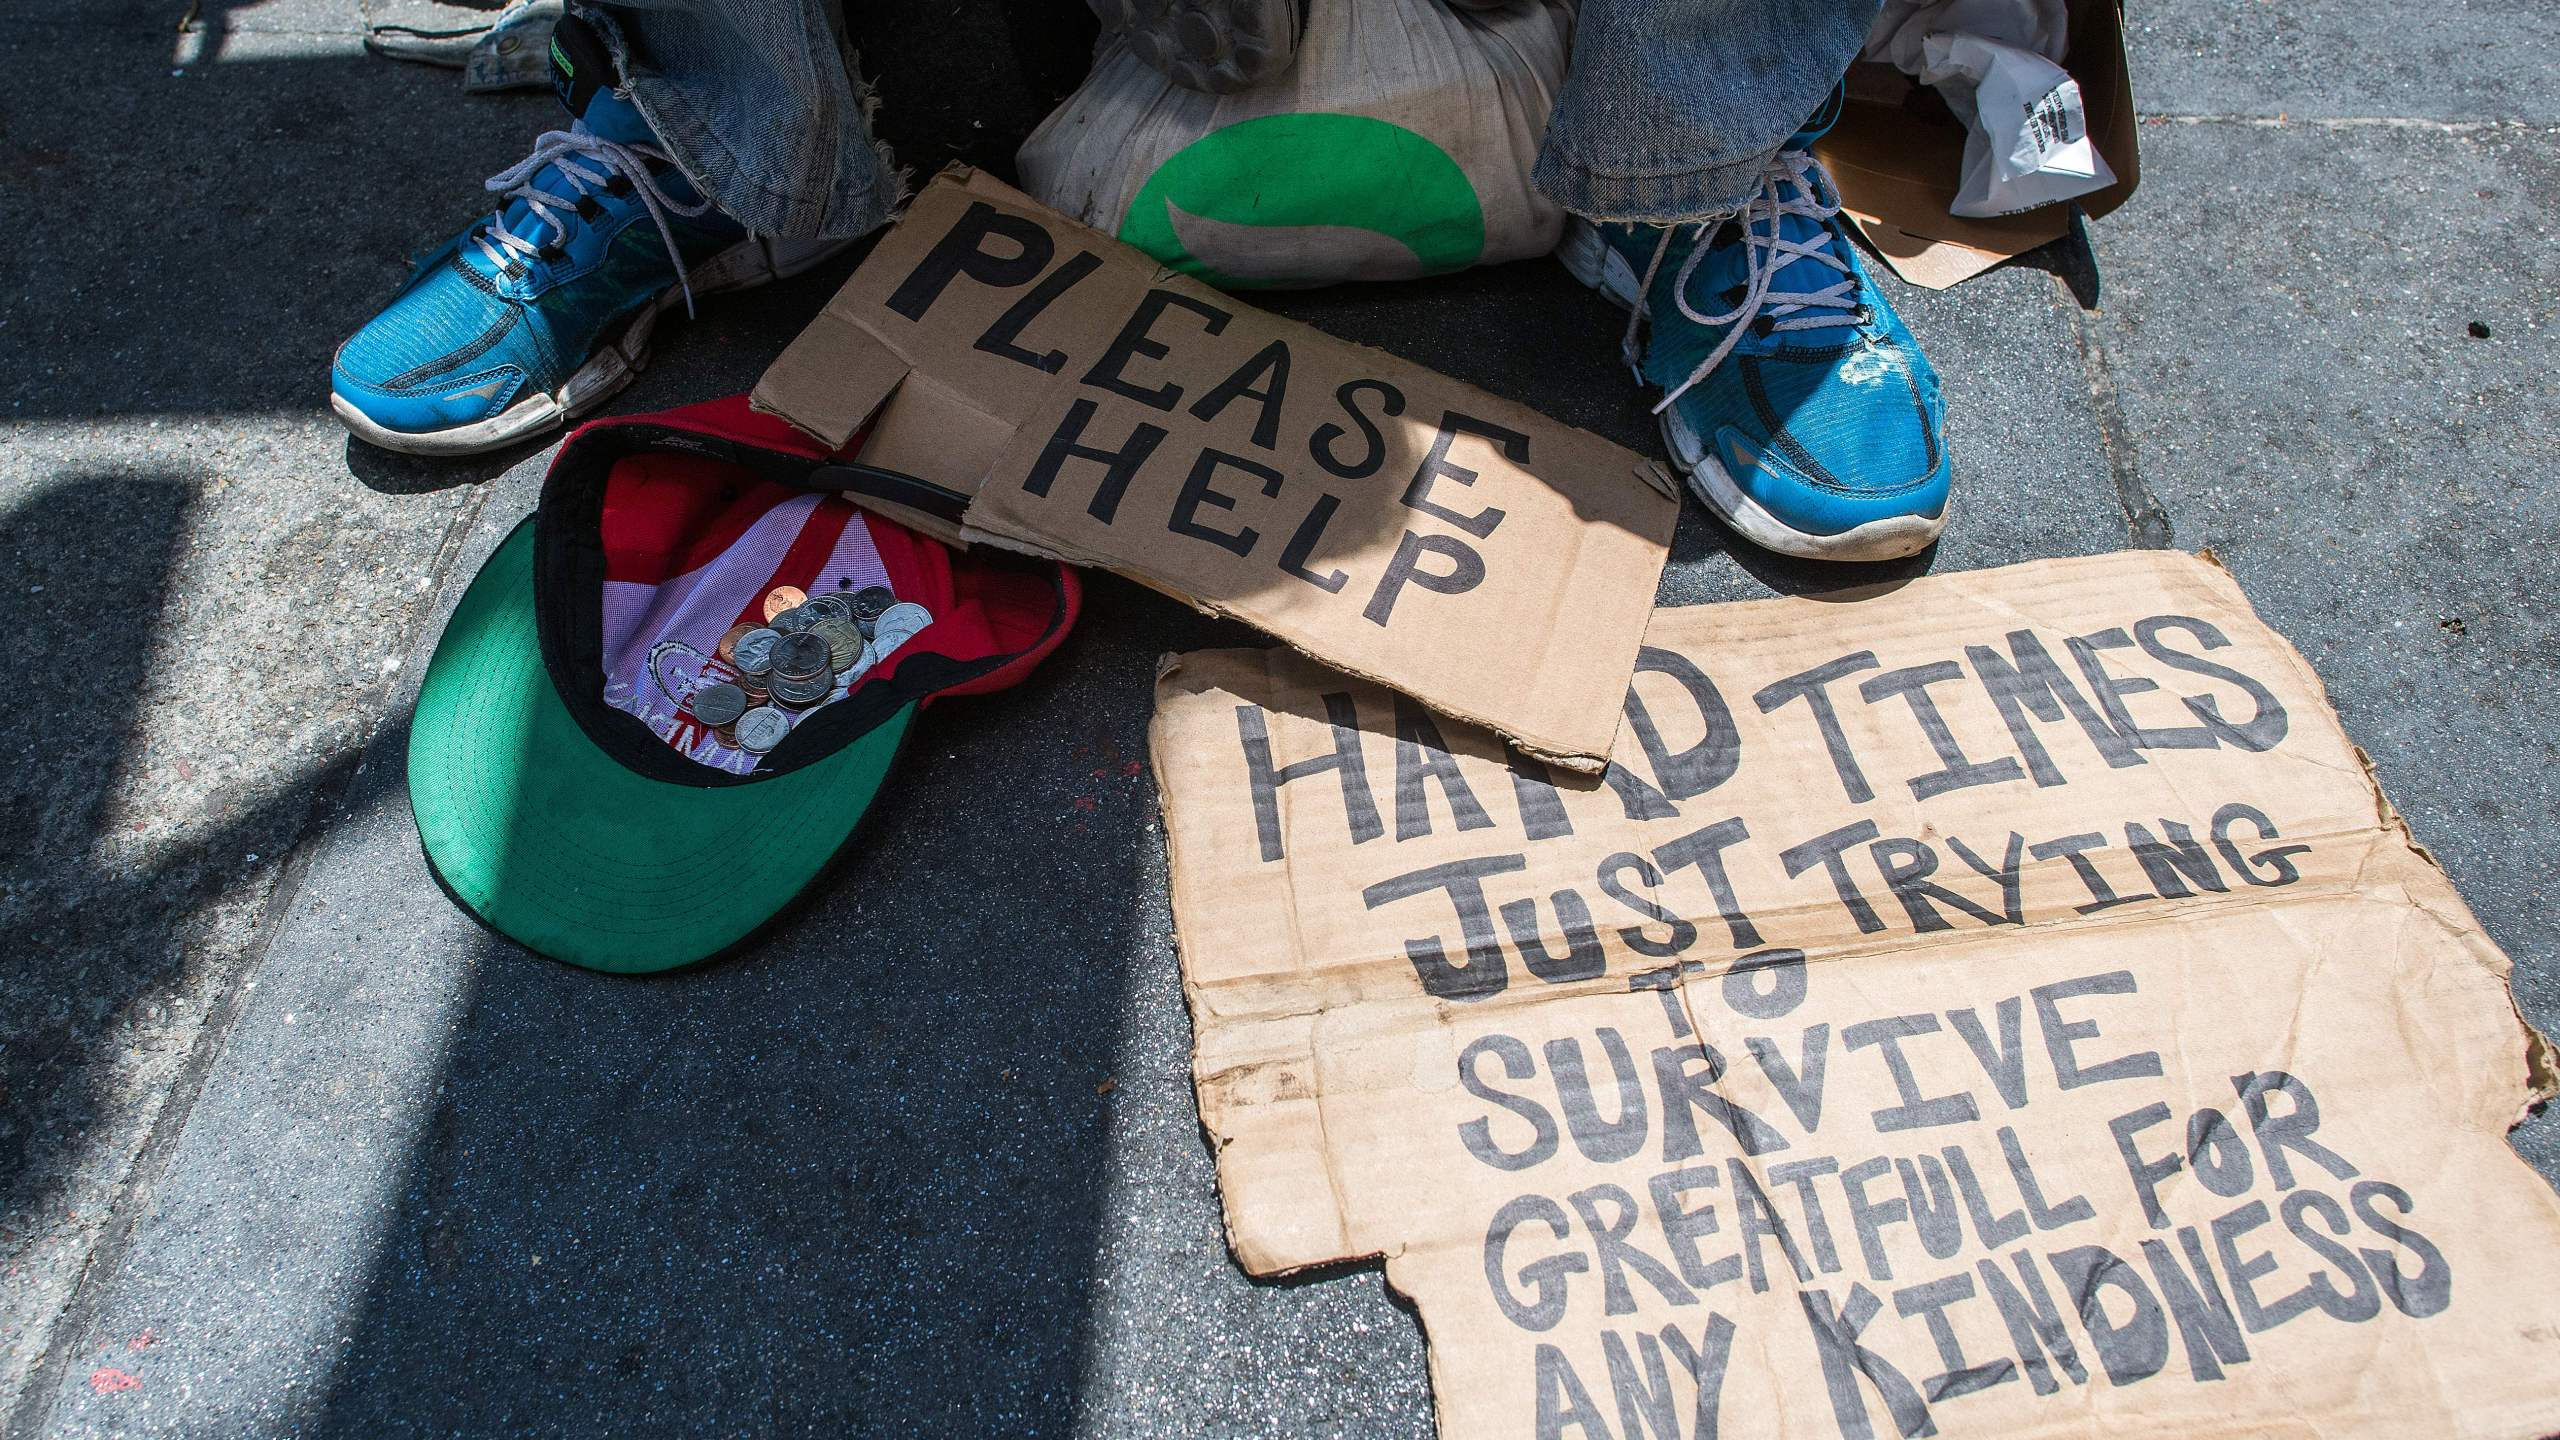 Andrew Loy begs along a sidewalk in downtown San Francisco, on June, 28, 2016. (Credit: JOSH EDELSON/AFP/Getty Images)